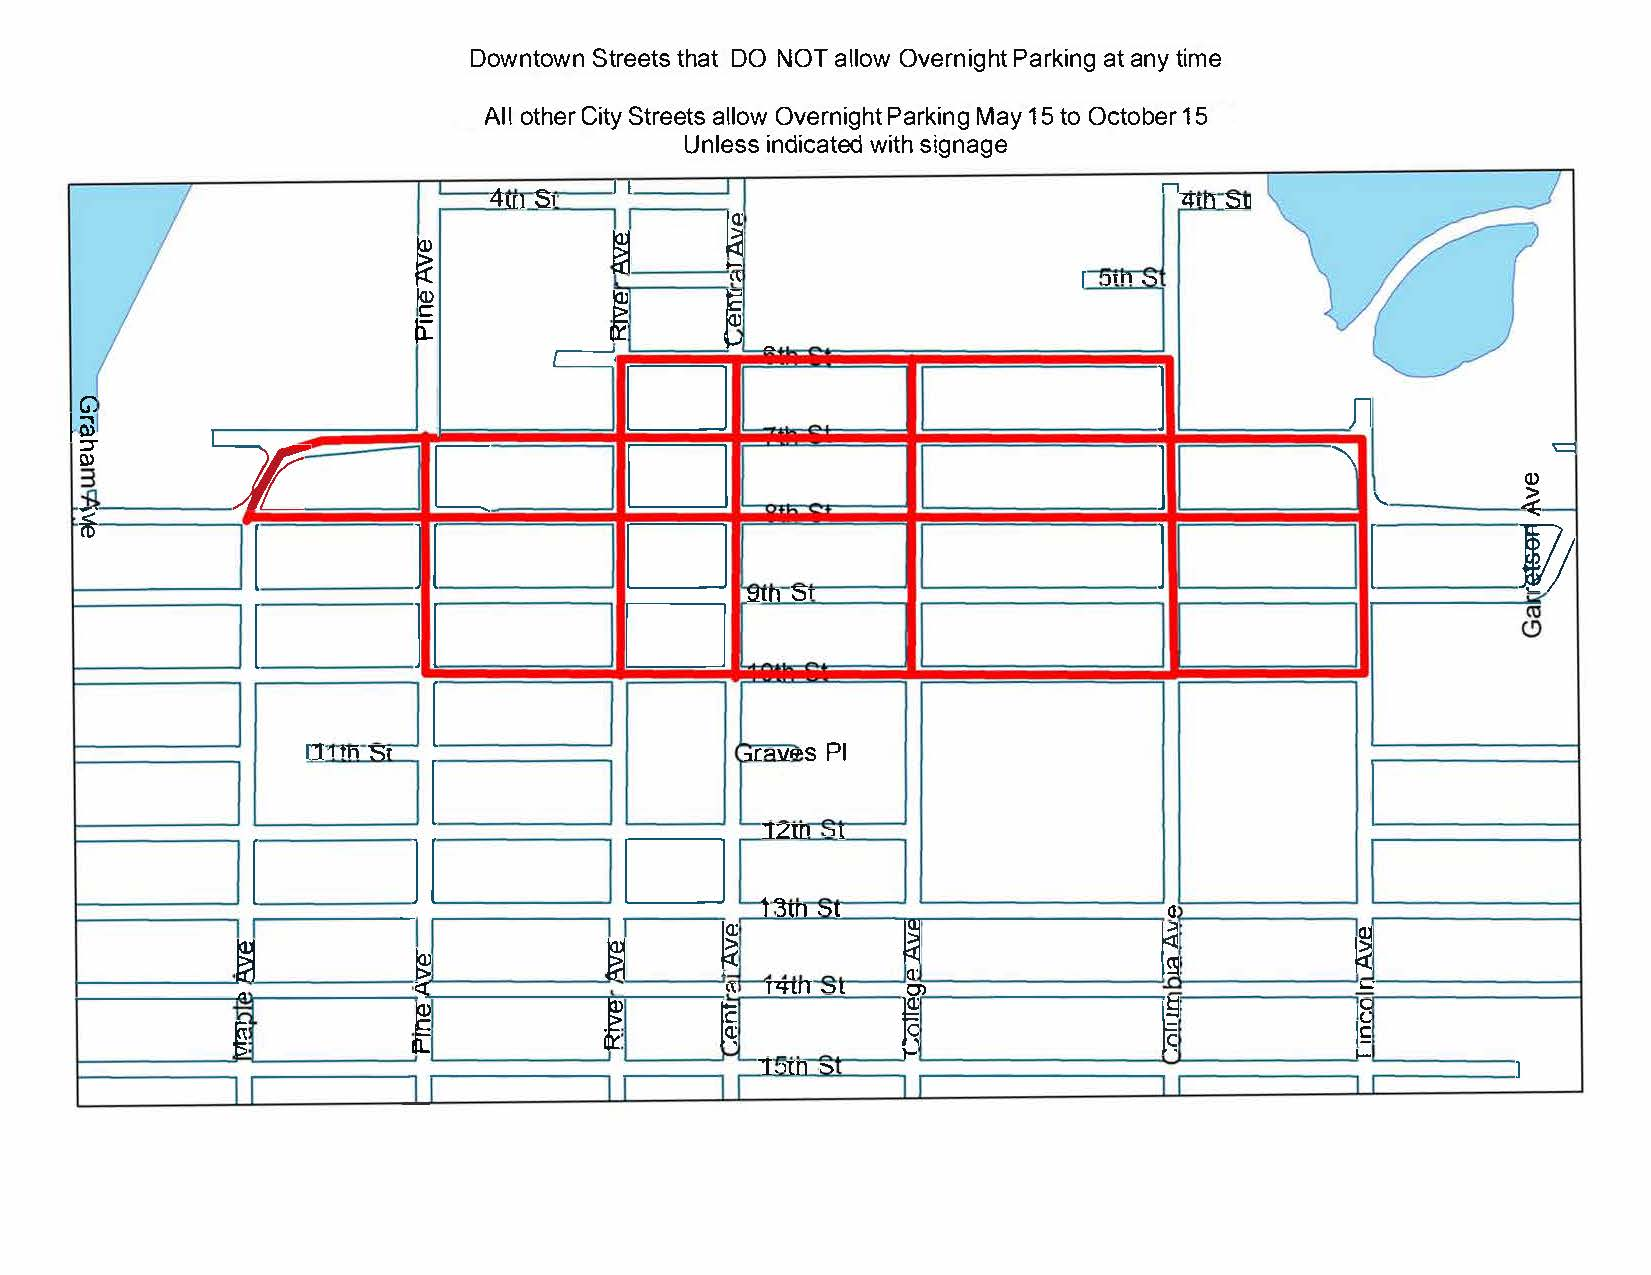 Overnight Parking Downtown Parking Map